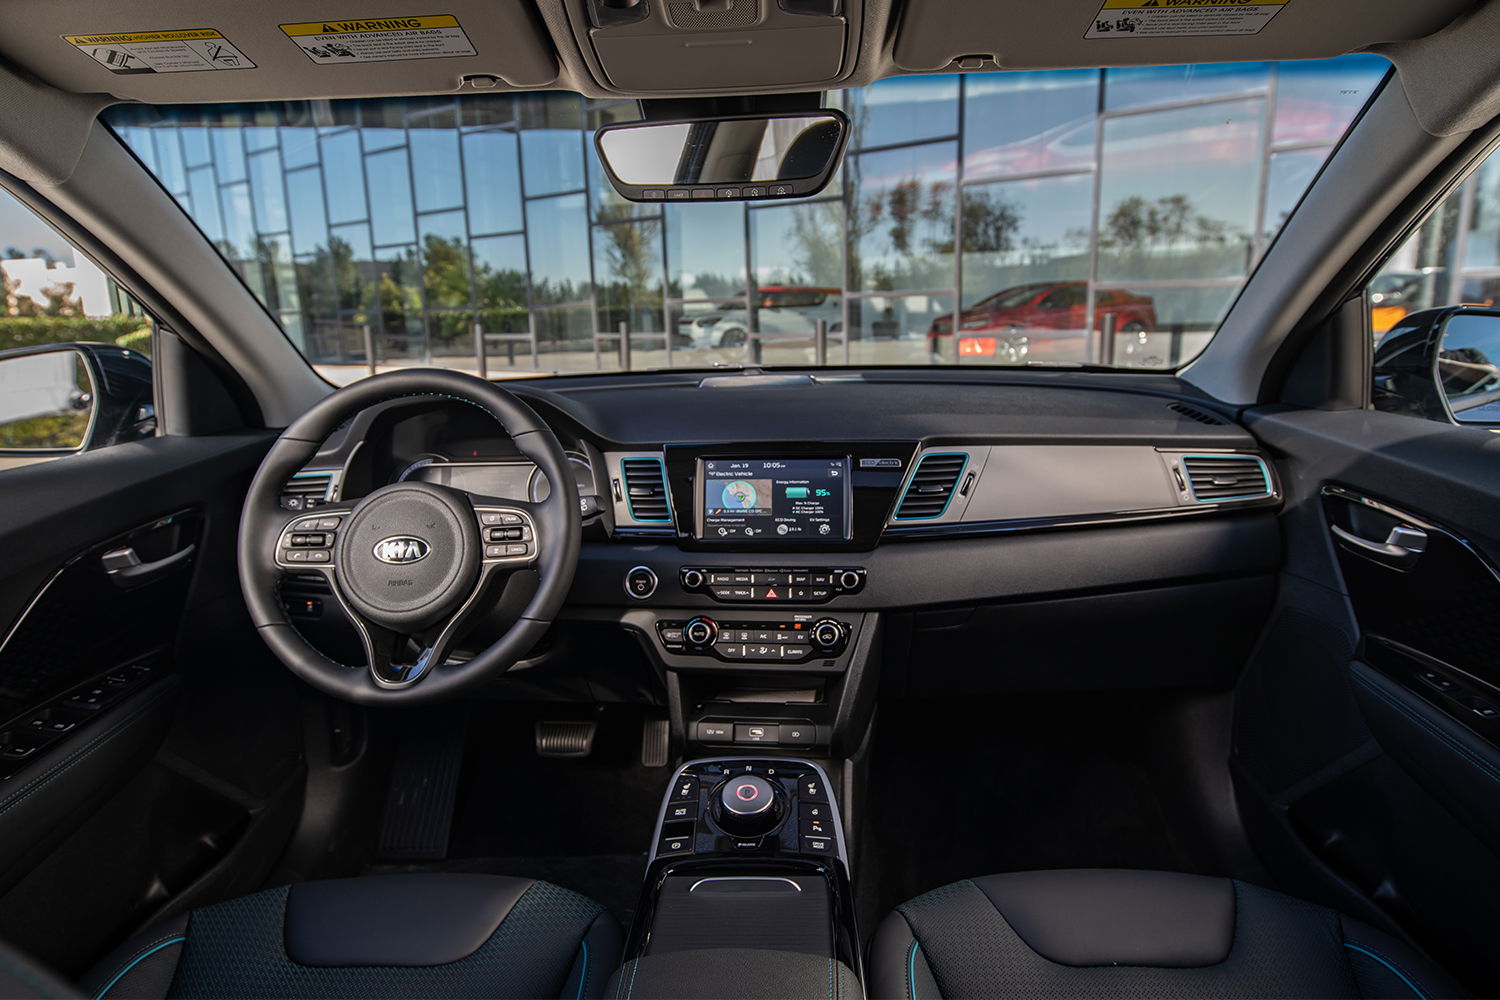 The view from the front seats of the Kia Niro EV, including the car's dashboard